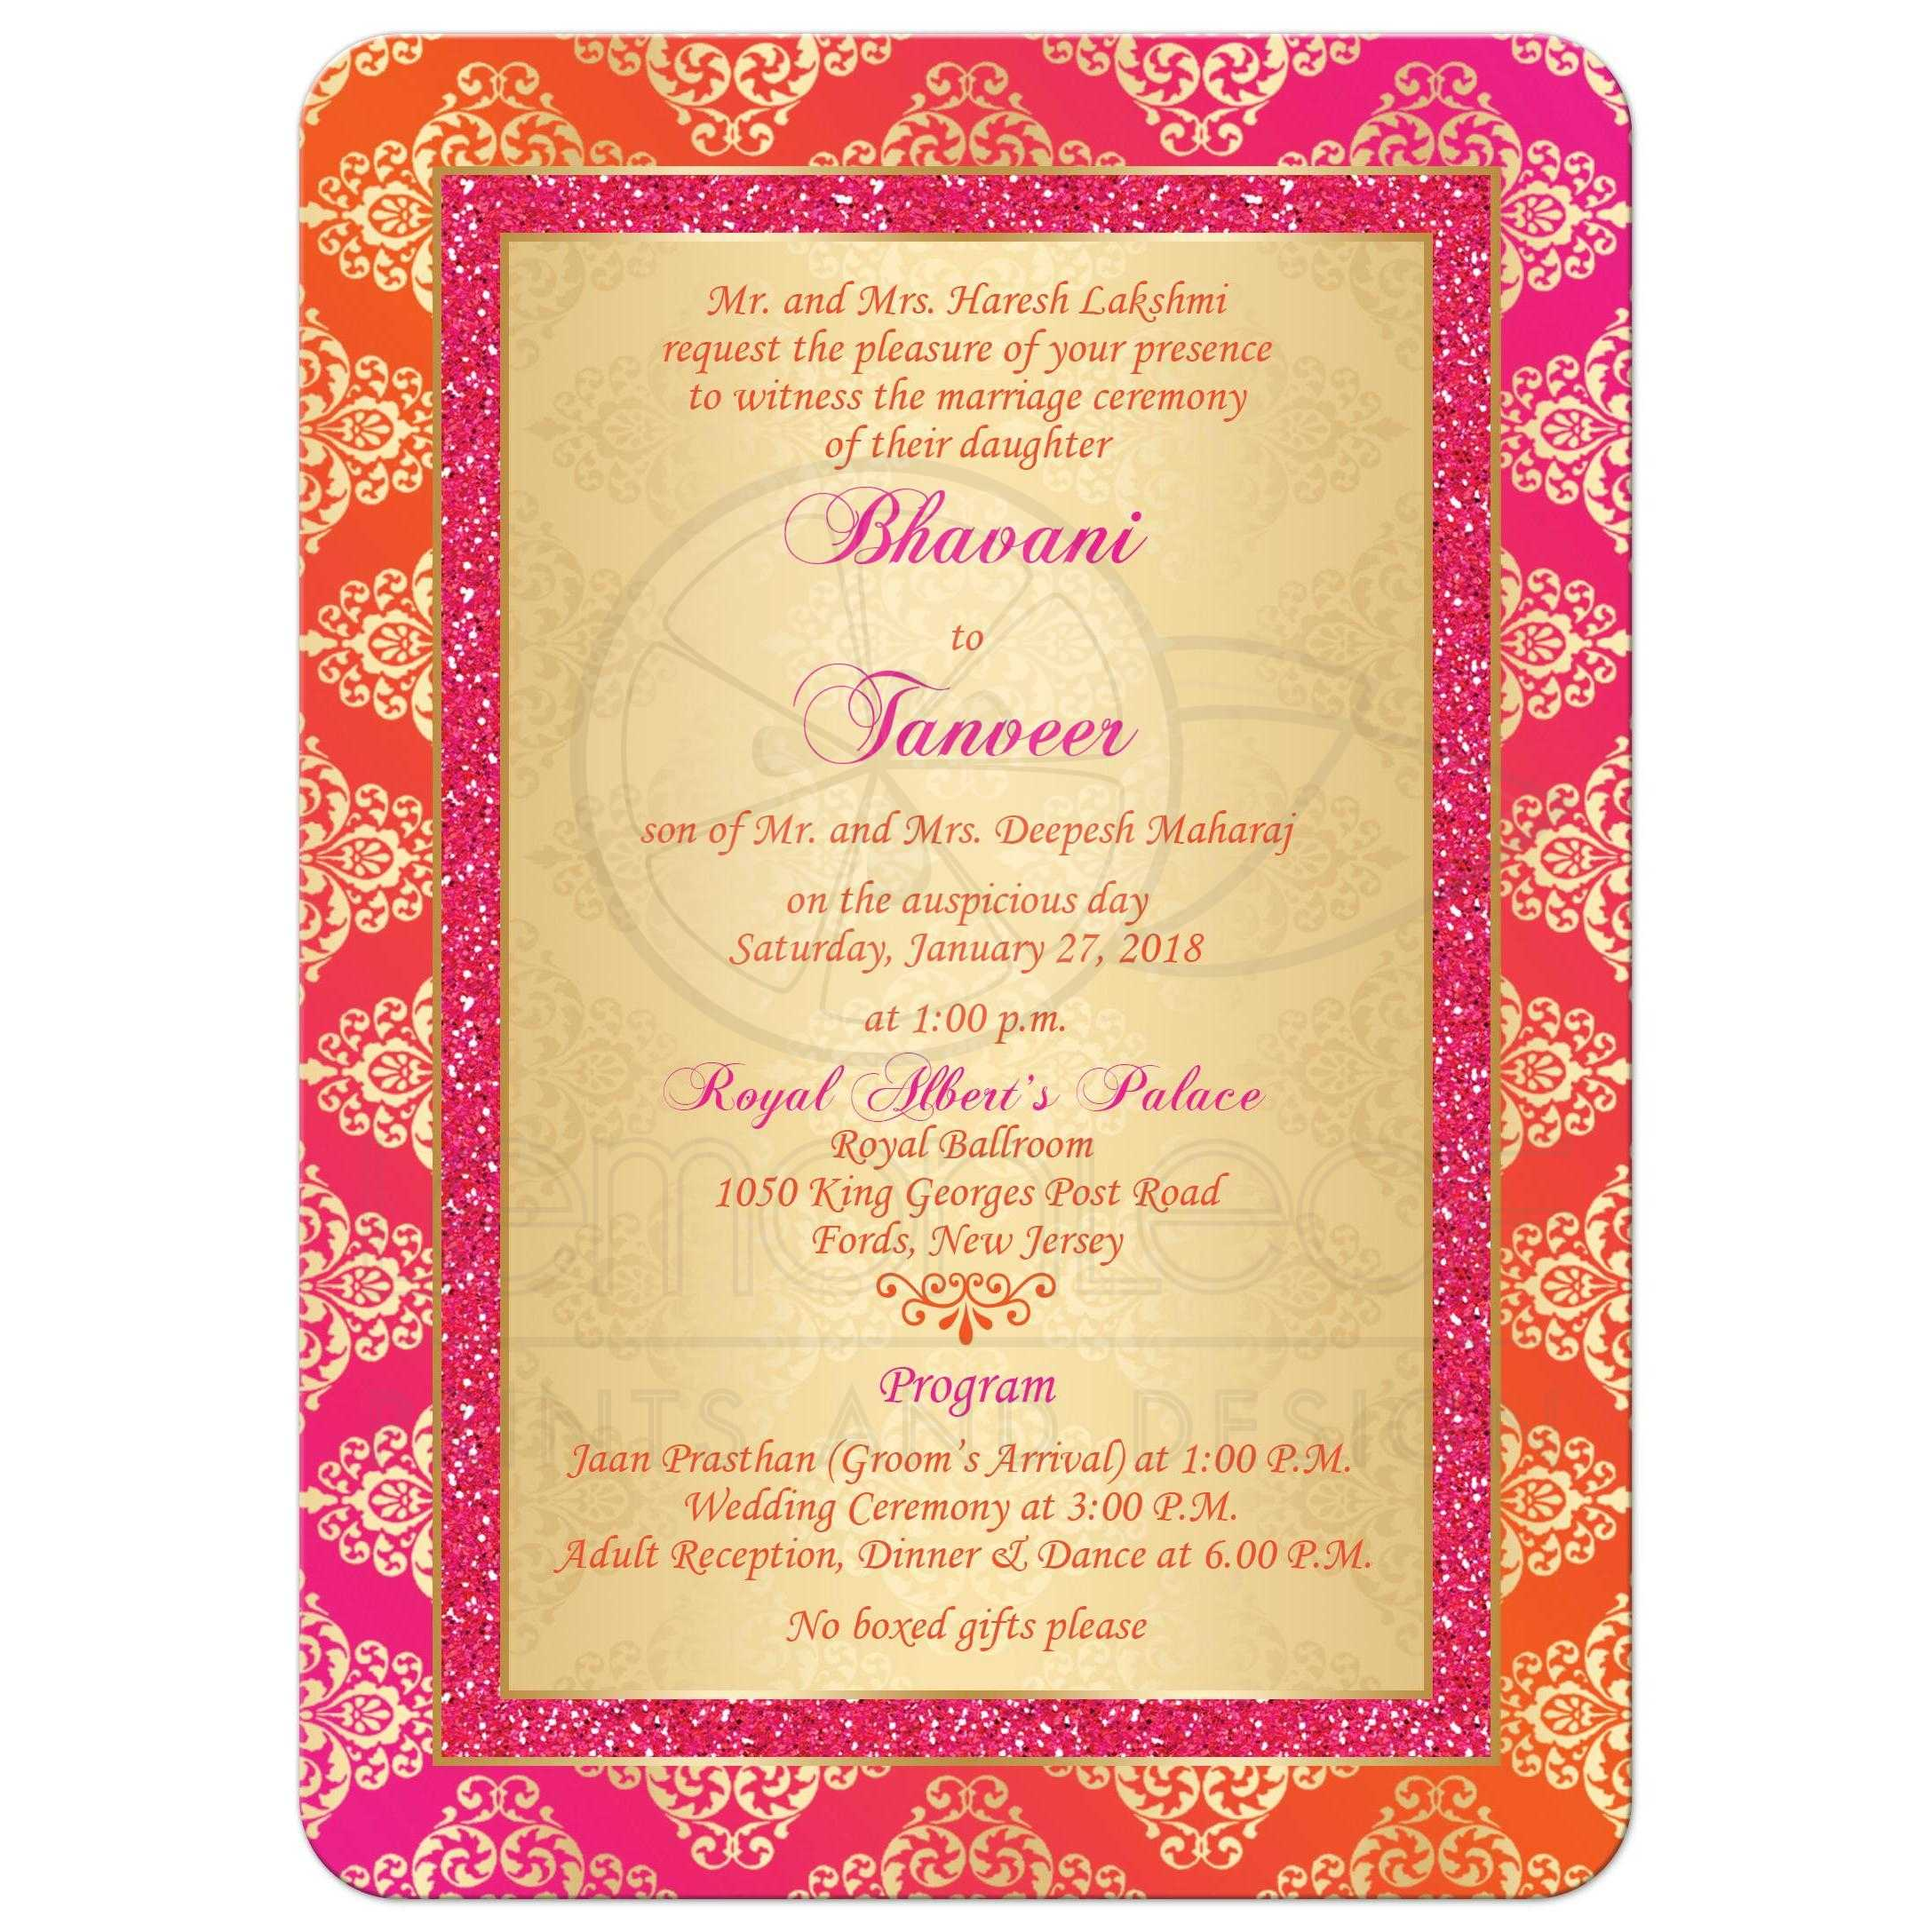 Wedding Invitation | Orange, Fuchsia, Gold Damask | Faux Pink ...